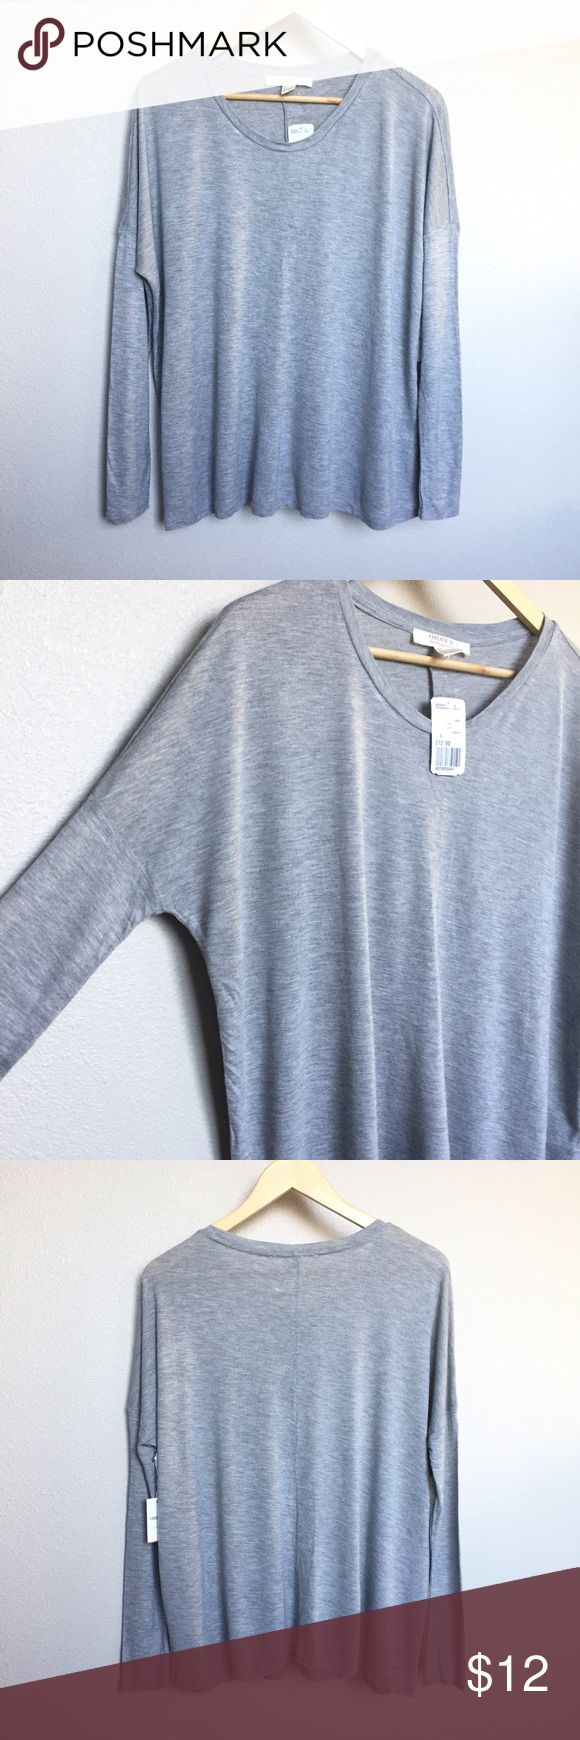 Grey Babydoll Shirt Brand new with tags! I just purchased this top at Forever 21 but I didn't like how it looked on me after trying it on at home 😣 My loss is your gain! It's VERY sort and thin material. The arms are tighter fitting and the torso area is flowy. It fits like a batwing-type shirt. No flaws. Measurements available upon request! Size small but fits like a medium. Forever 21 Tops Tees - Long Sleeve